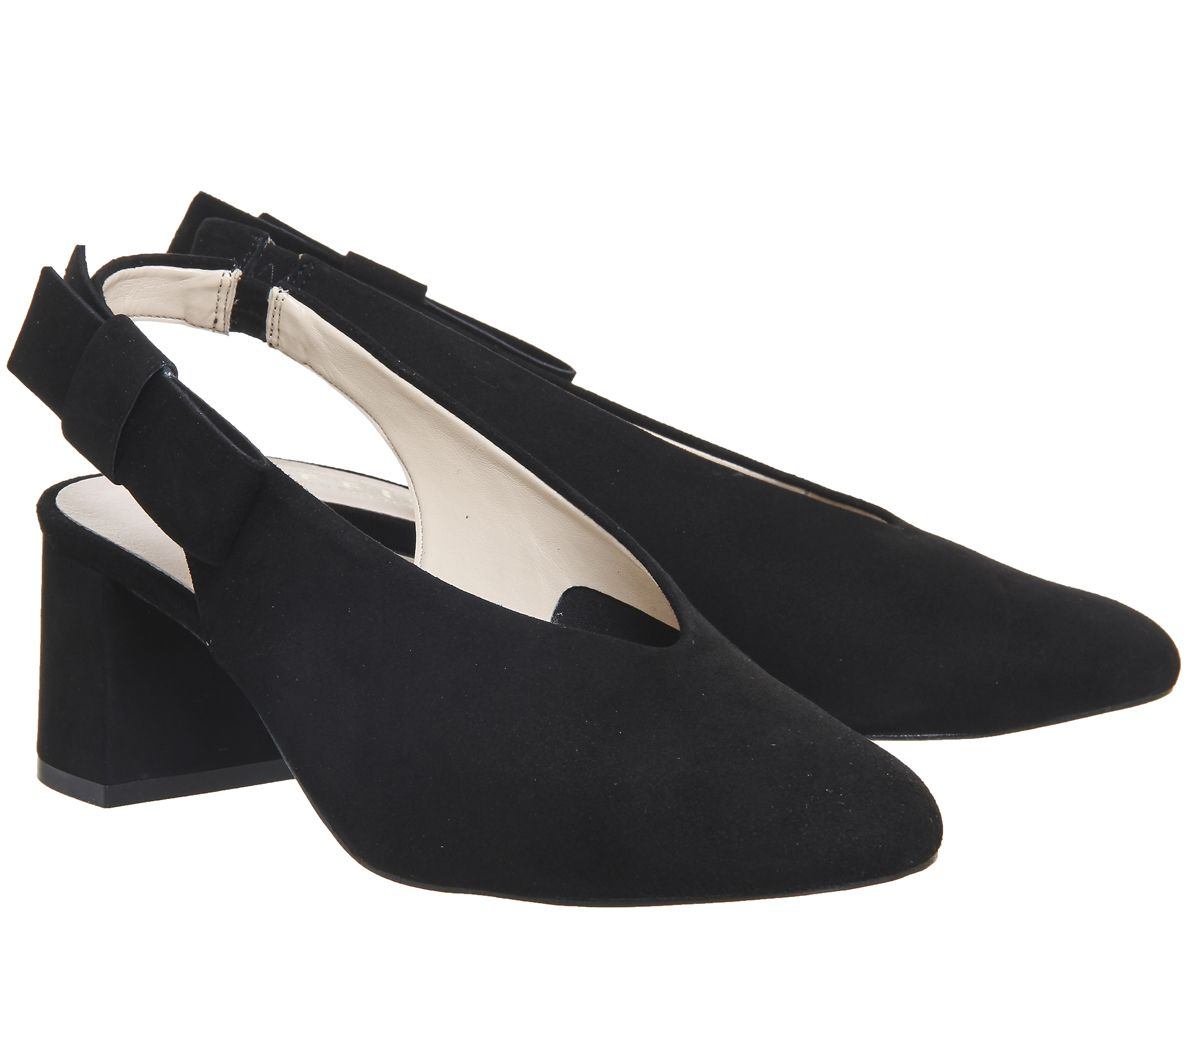 Womens-Office-Magical-Bow-Slingback-Heels-Black-Suede-Heels thumbnail 10